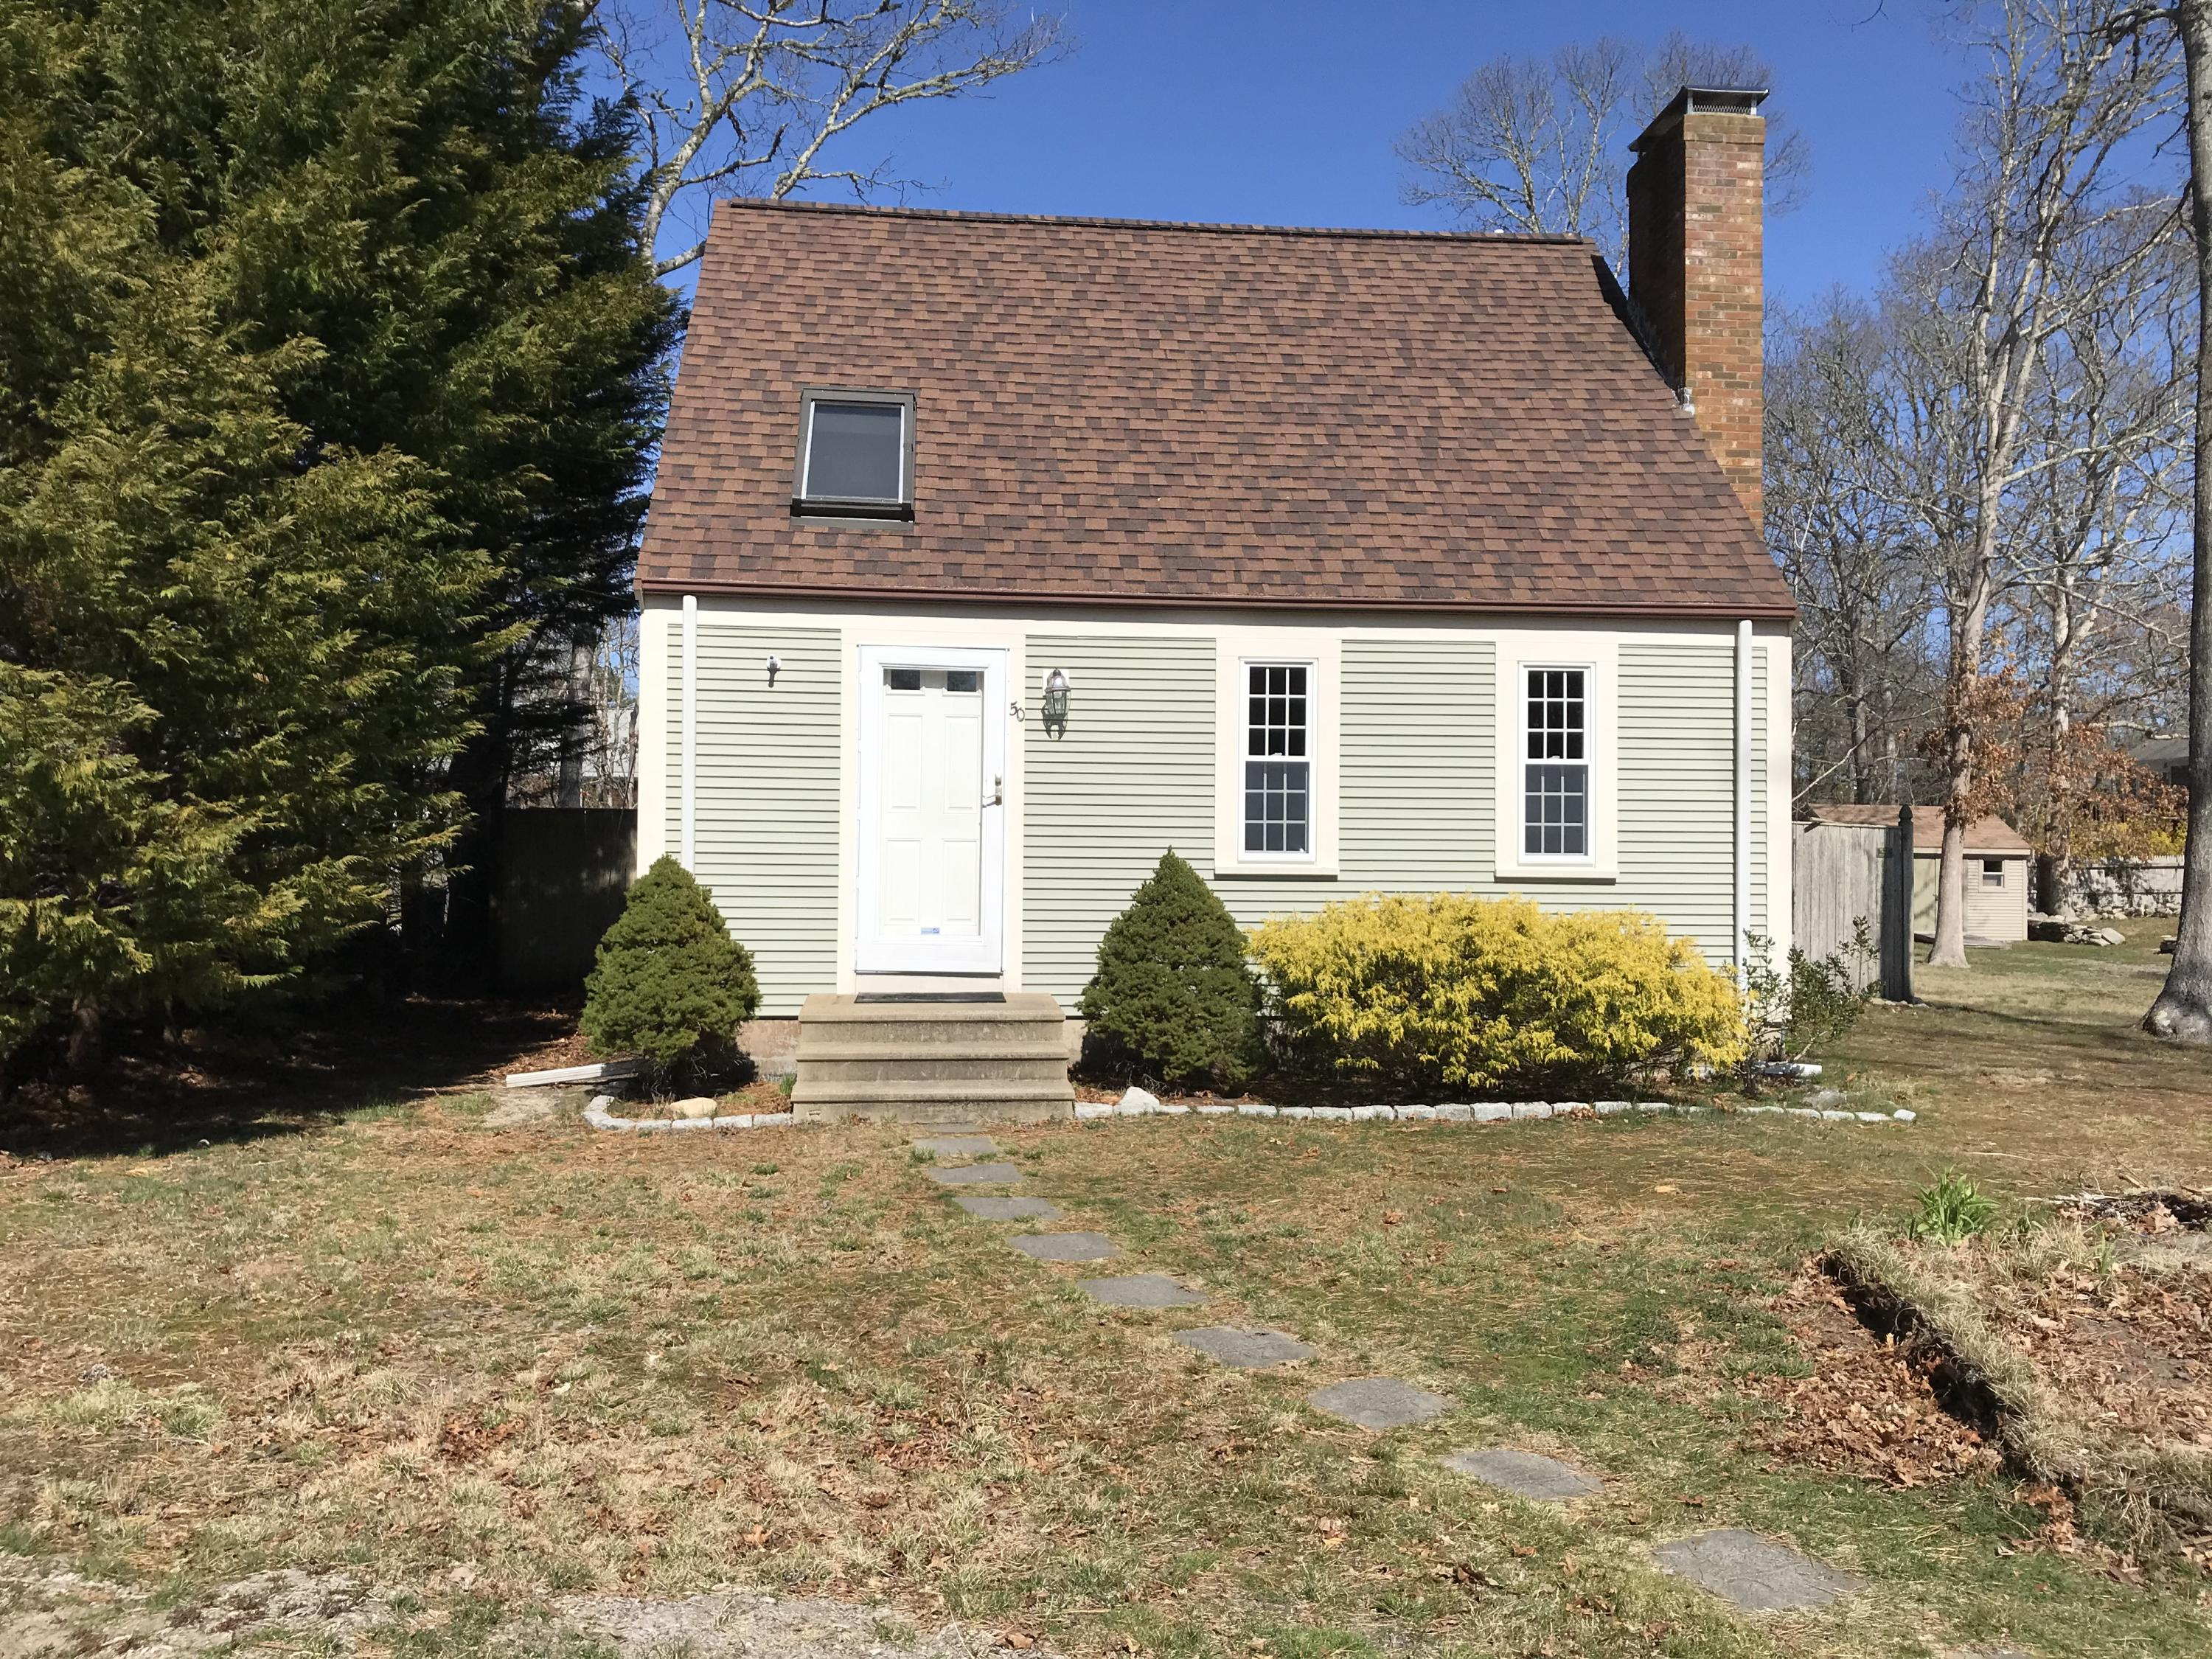 50 Lake Road, West Yarmouth MA, 02673 details